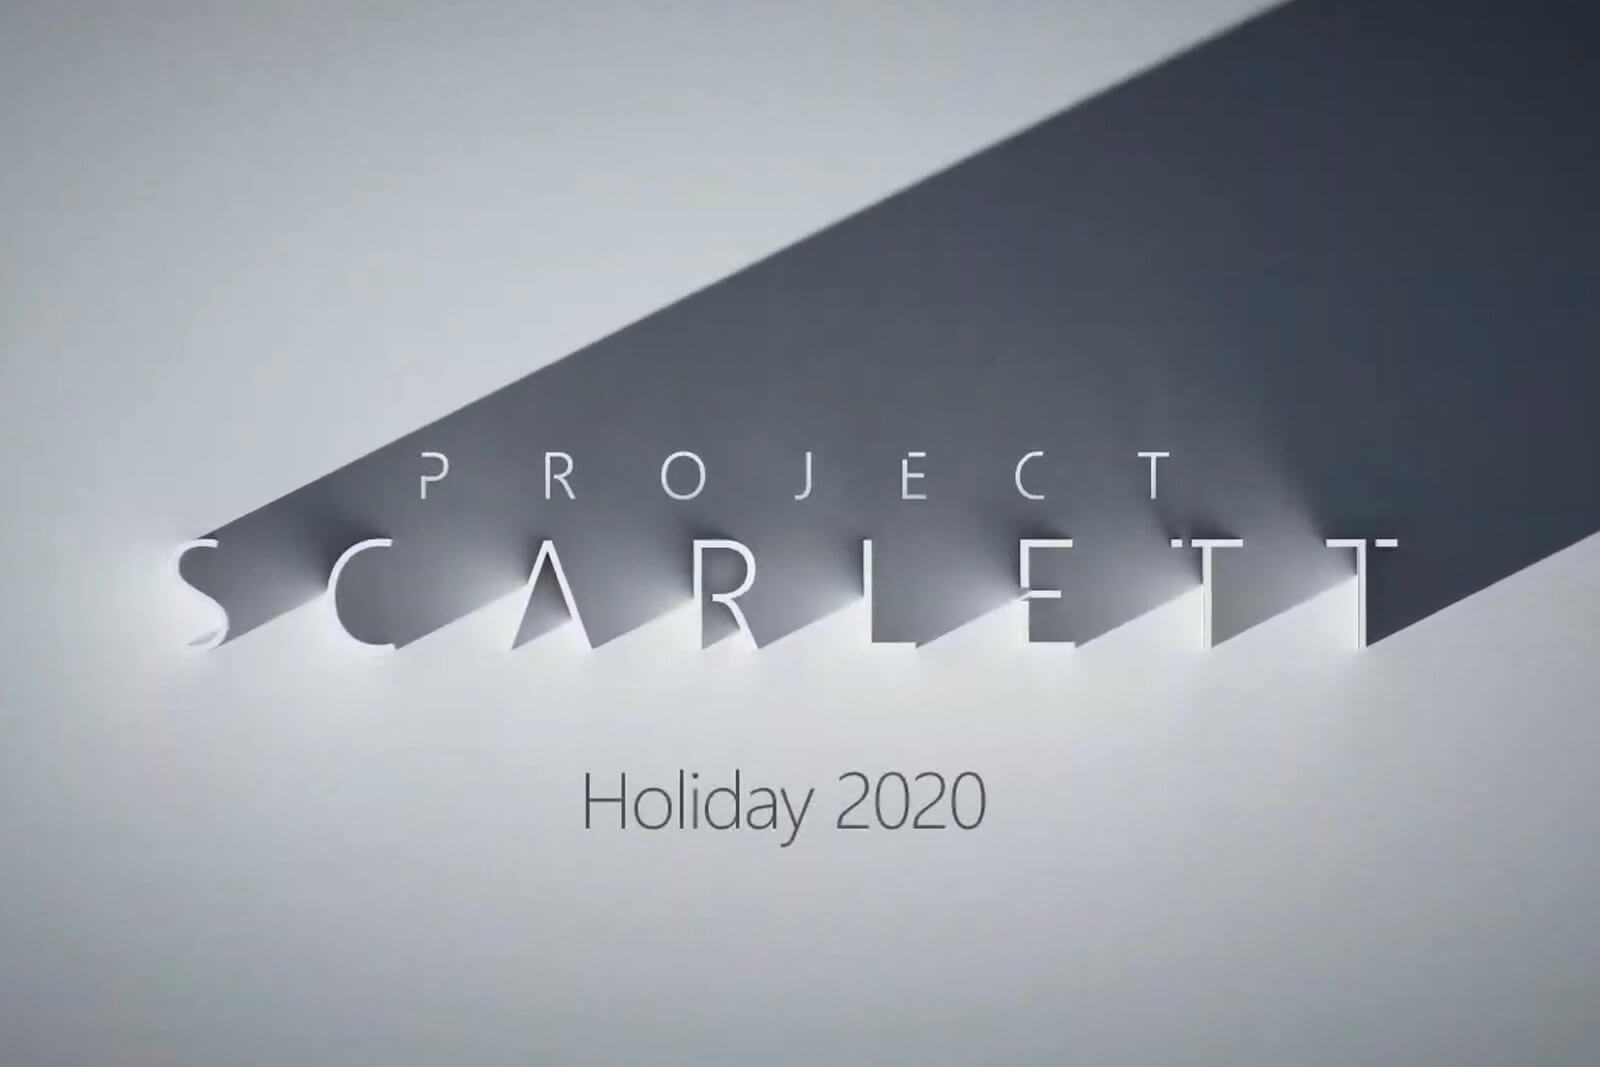 xbox-announces-project-scarlett